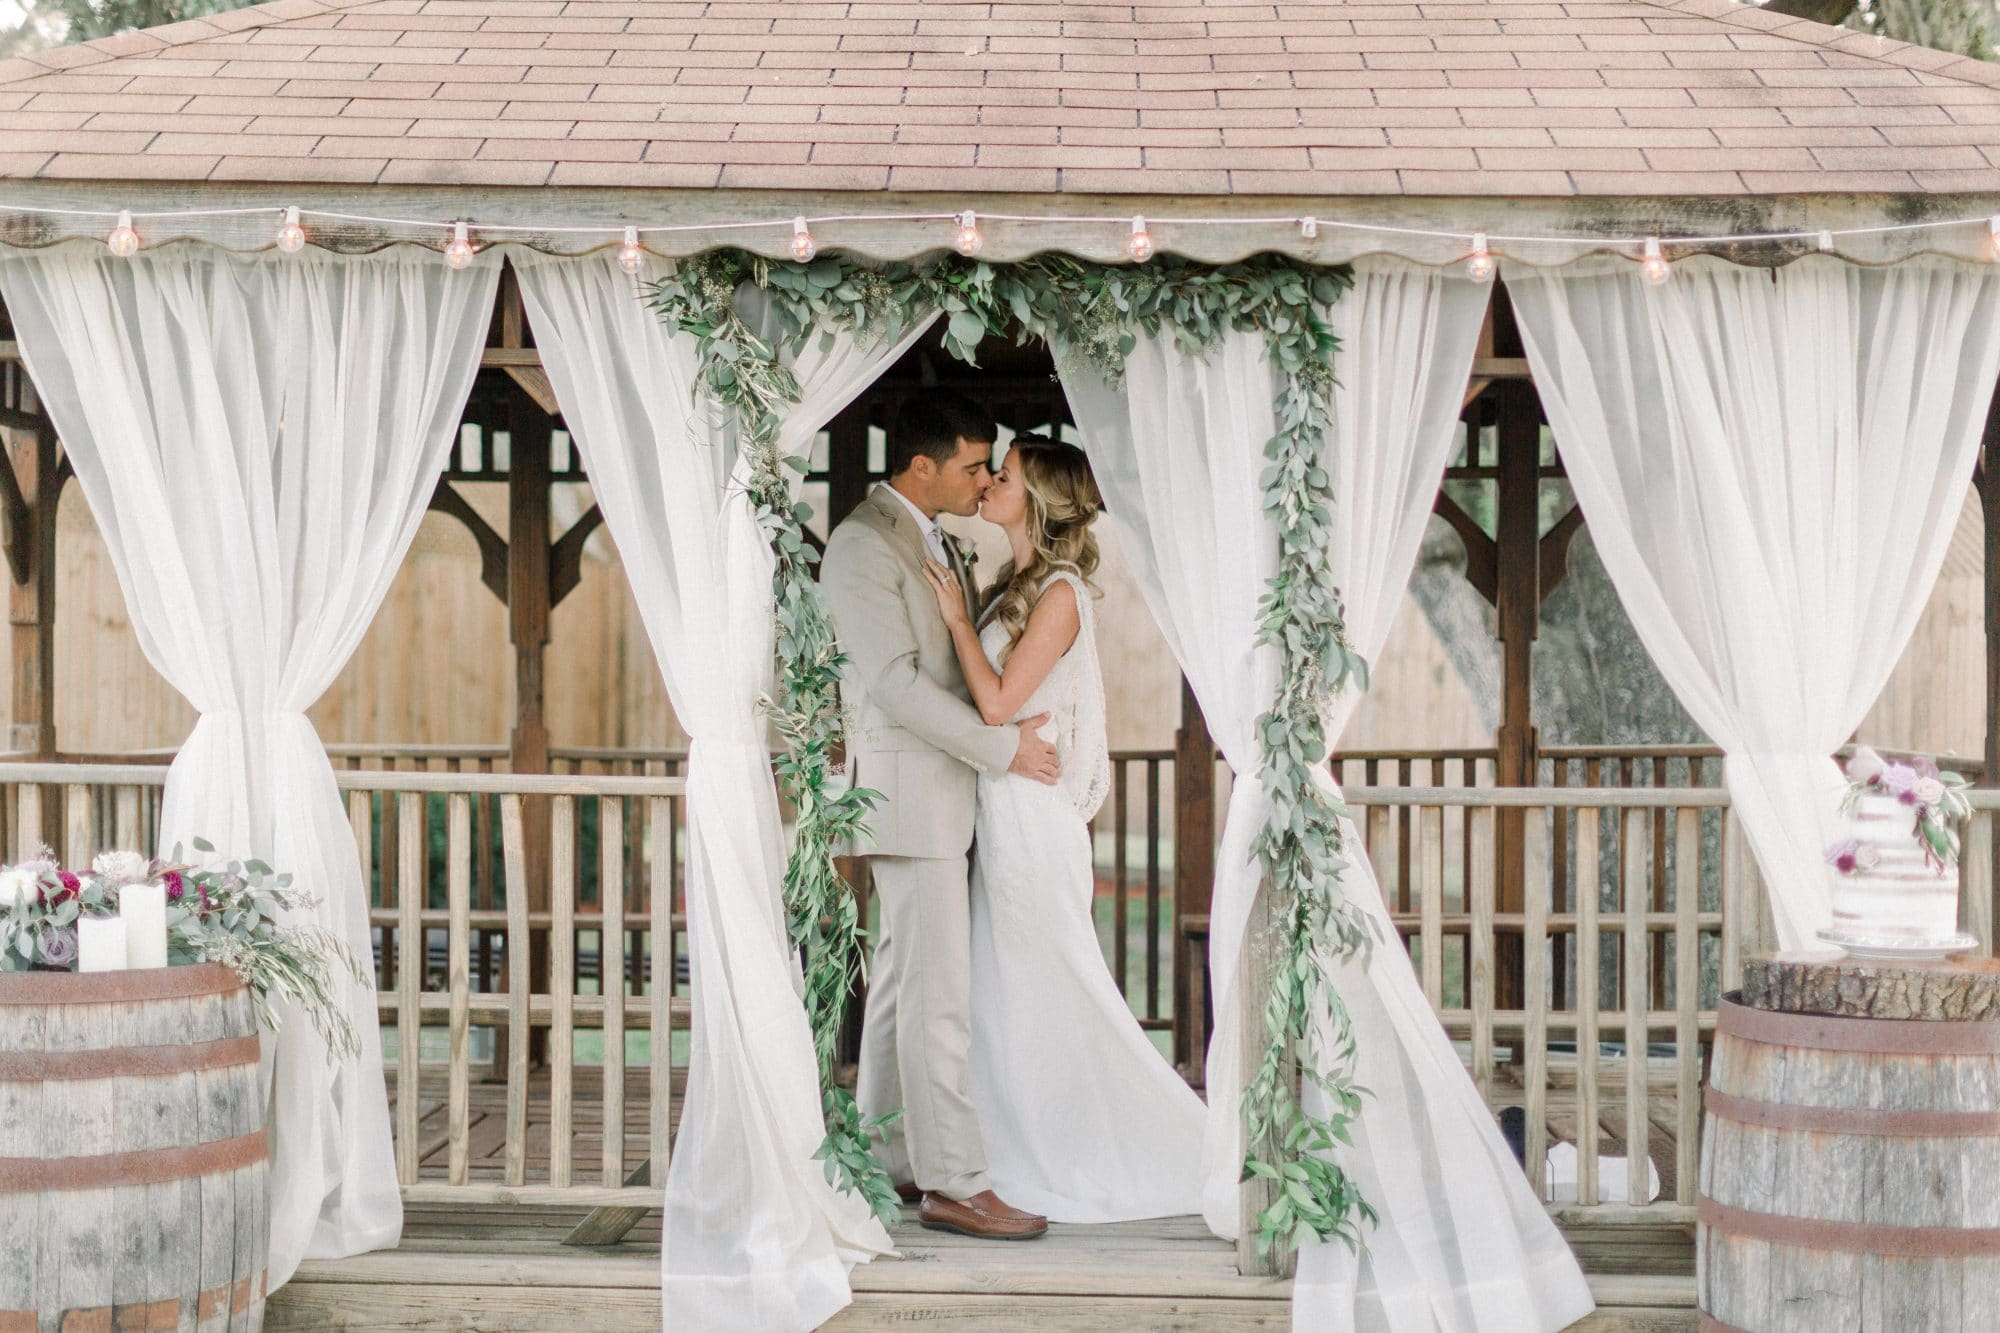 Harmony Haven Event Venue - newlyweds kissing under gazebo draped with curtains and eucalyptus